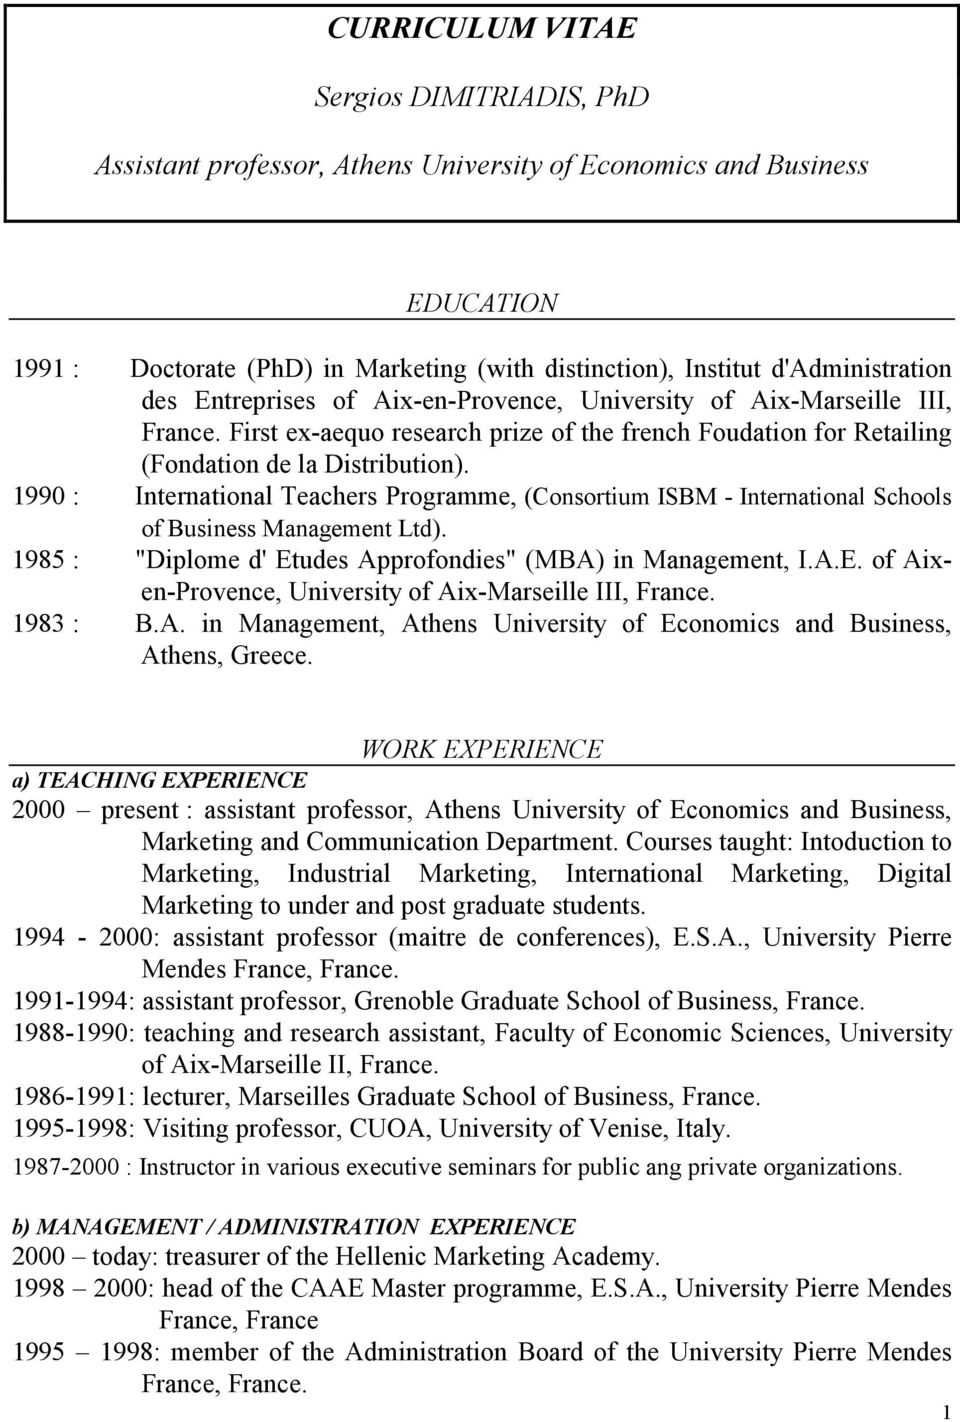 "1990 : International Teachers Programme, (Consortium ISBM - International Schools of Business Management Ltd). 1985 : ""Diplome d' Etudes Approfondies"" (MBA) in Management, I.A.E. of Aixen-Provence, University of Aix-Marseille III, France."